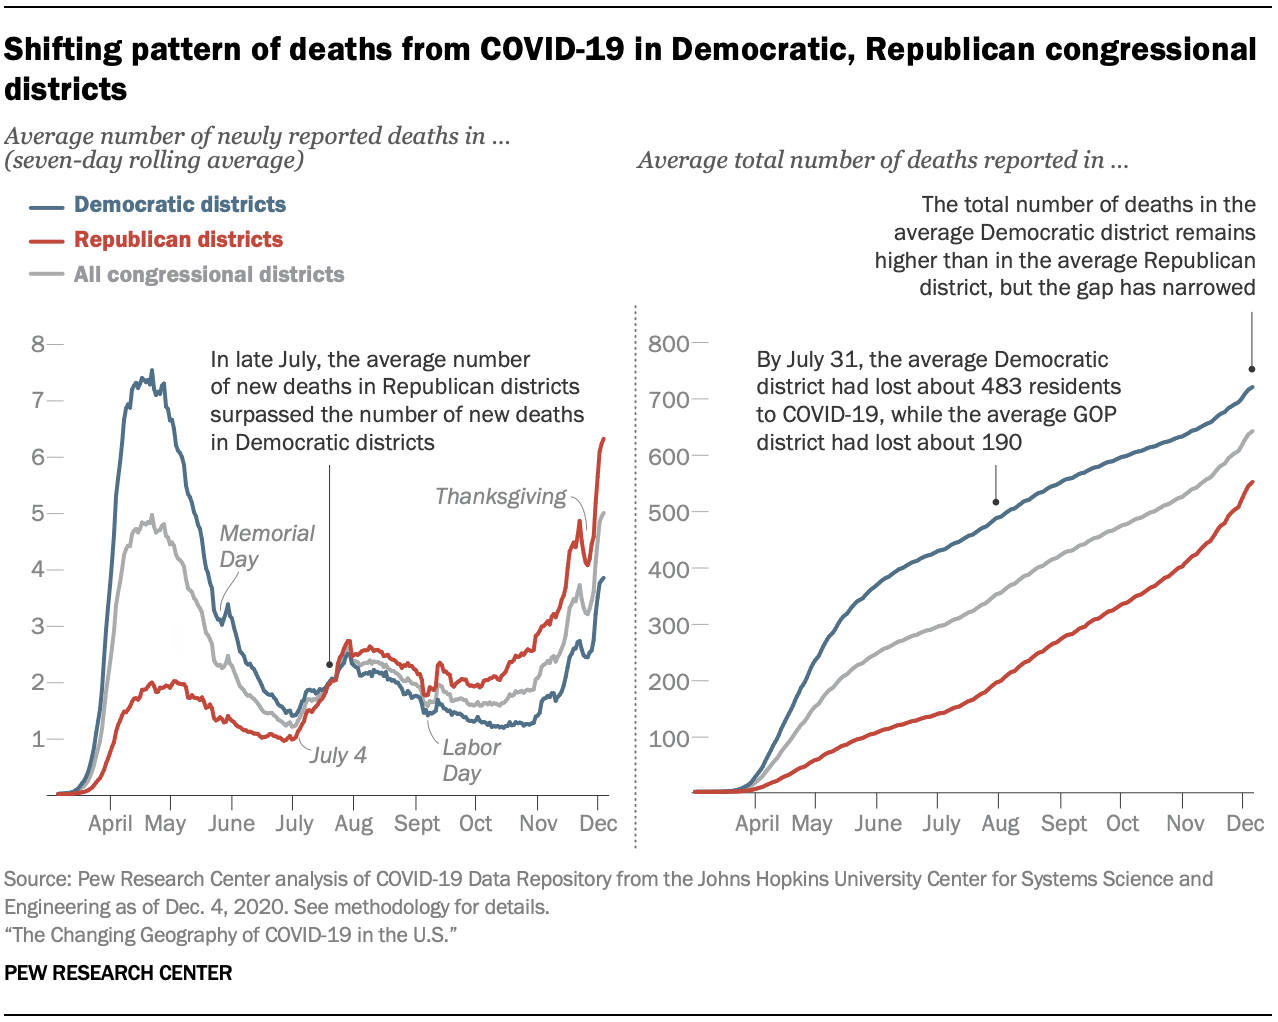 Shifting pattern of deaths from COVID-19 in Democratic, Republican congressional districts